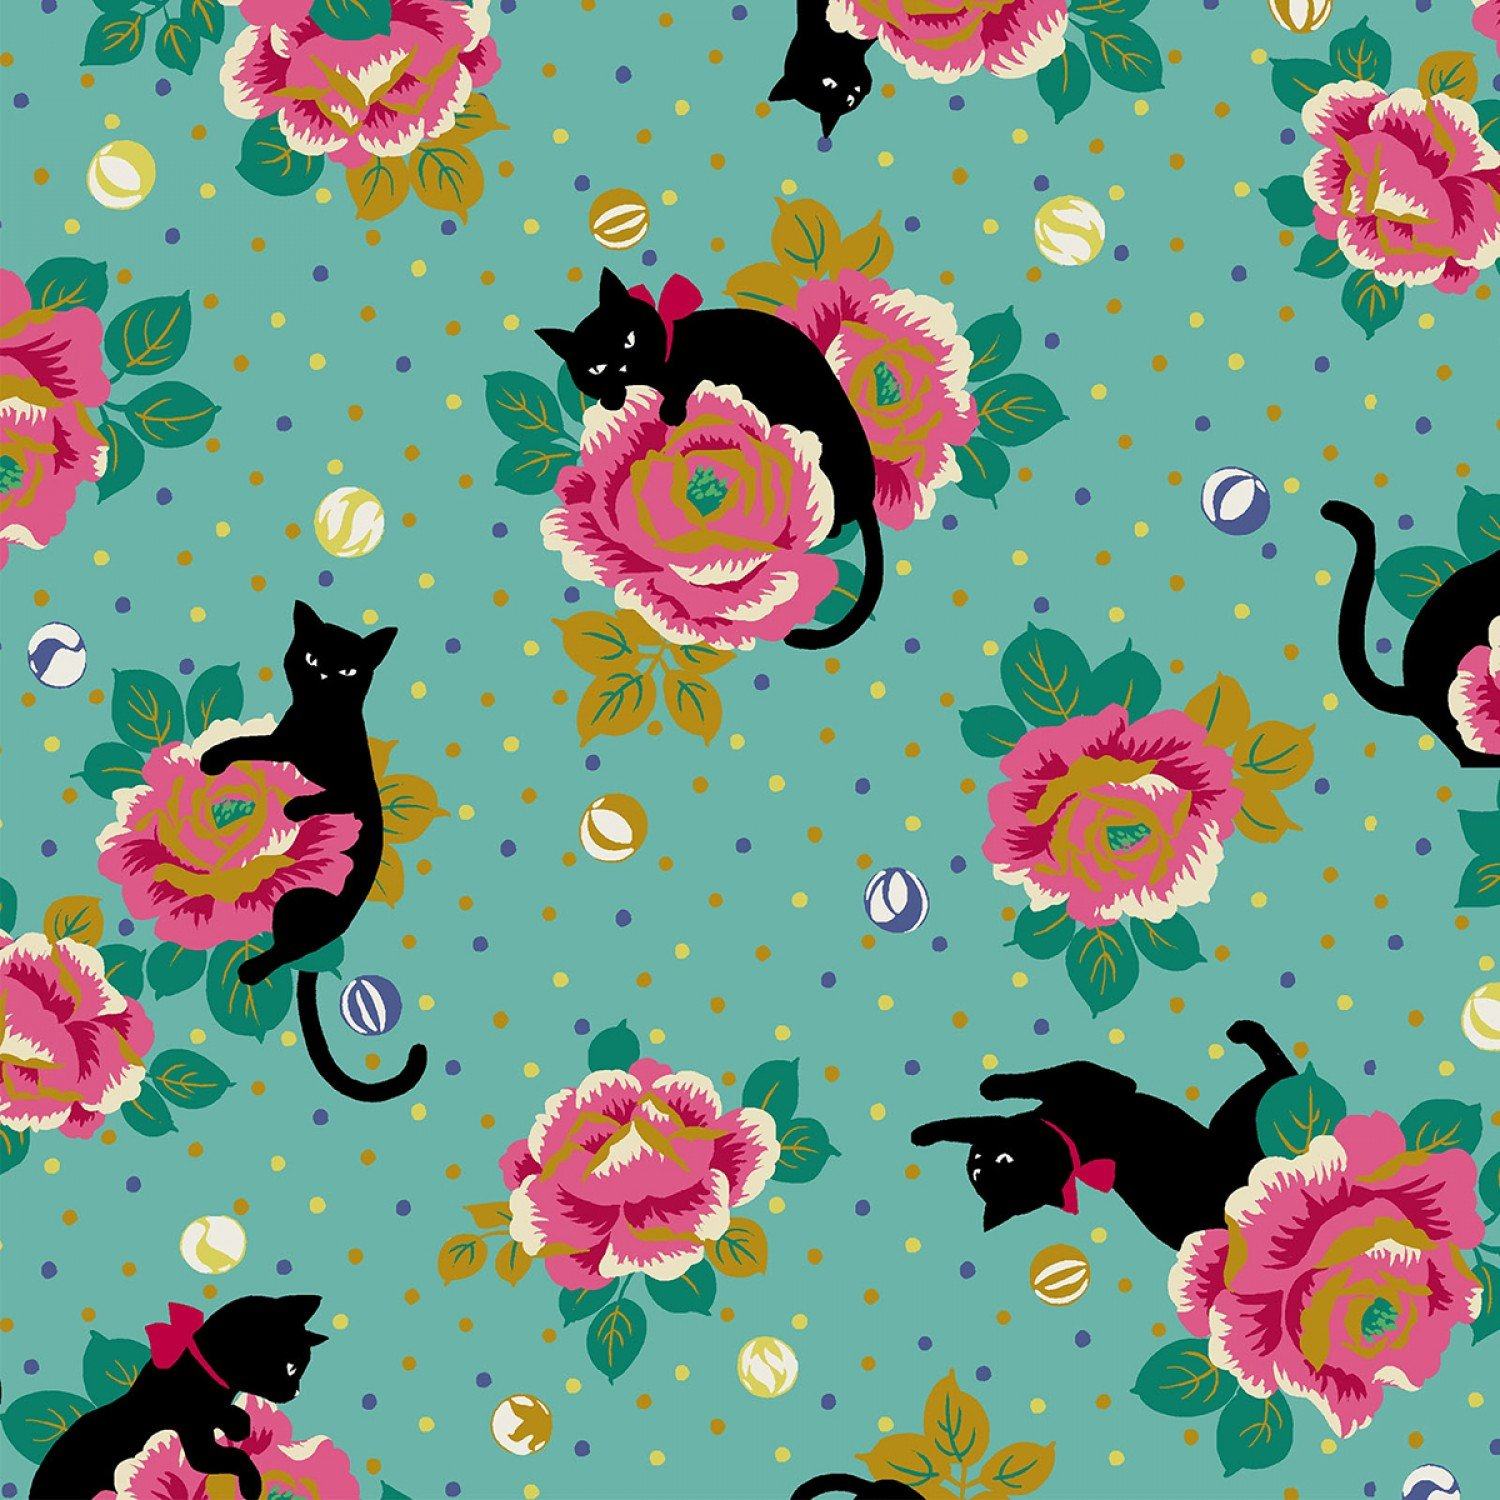 Pink Flowers On Teal With Black Cat Hr3270 13b